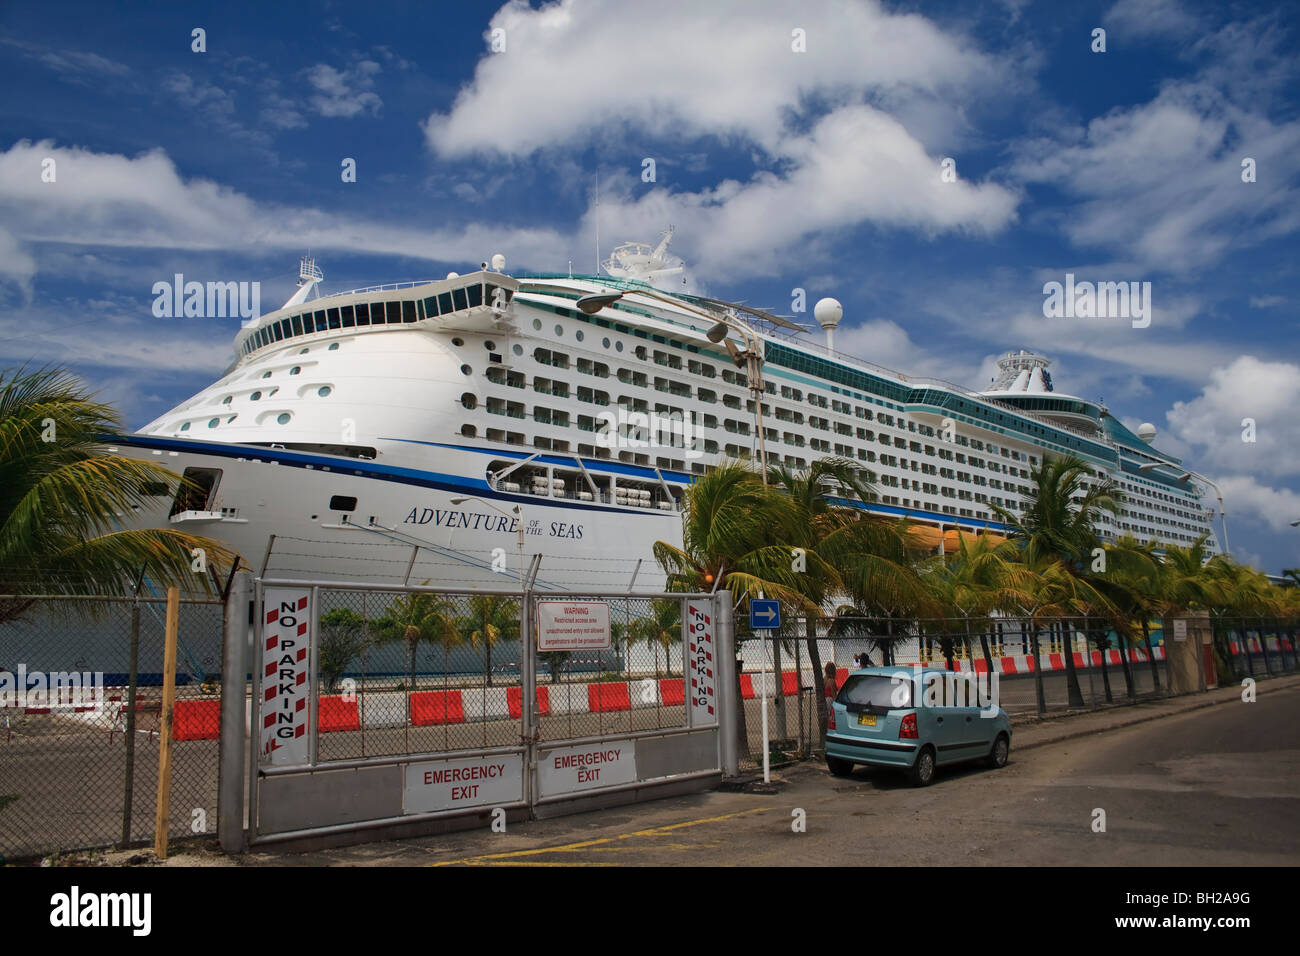 Royal Caribbean Adventure Of The Seas Cruiseship Docked At Port In - Aruba tours for cruise ship passengers